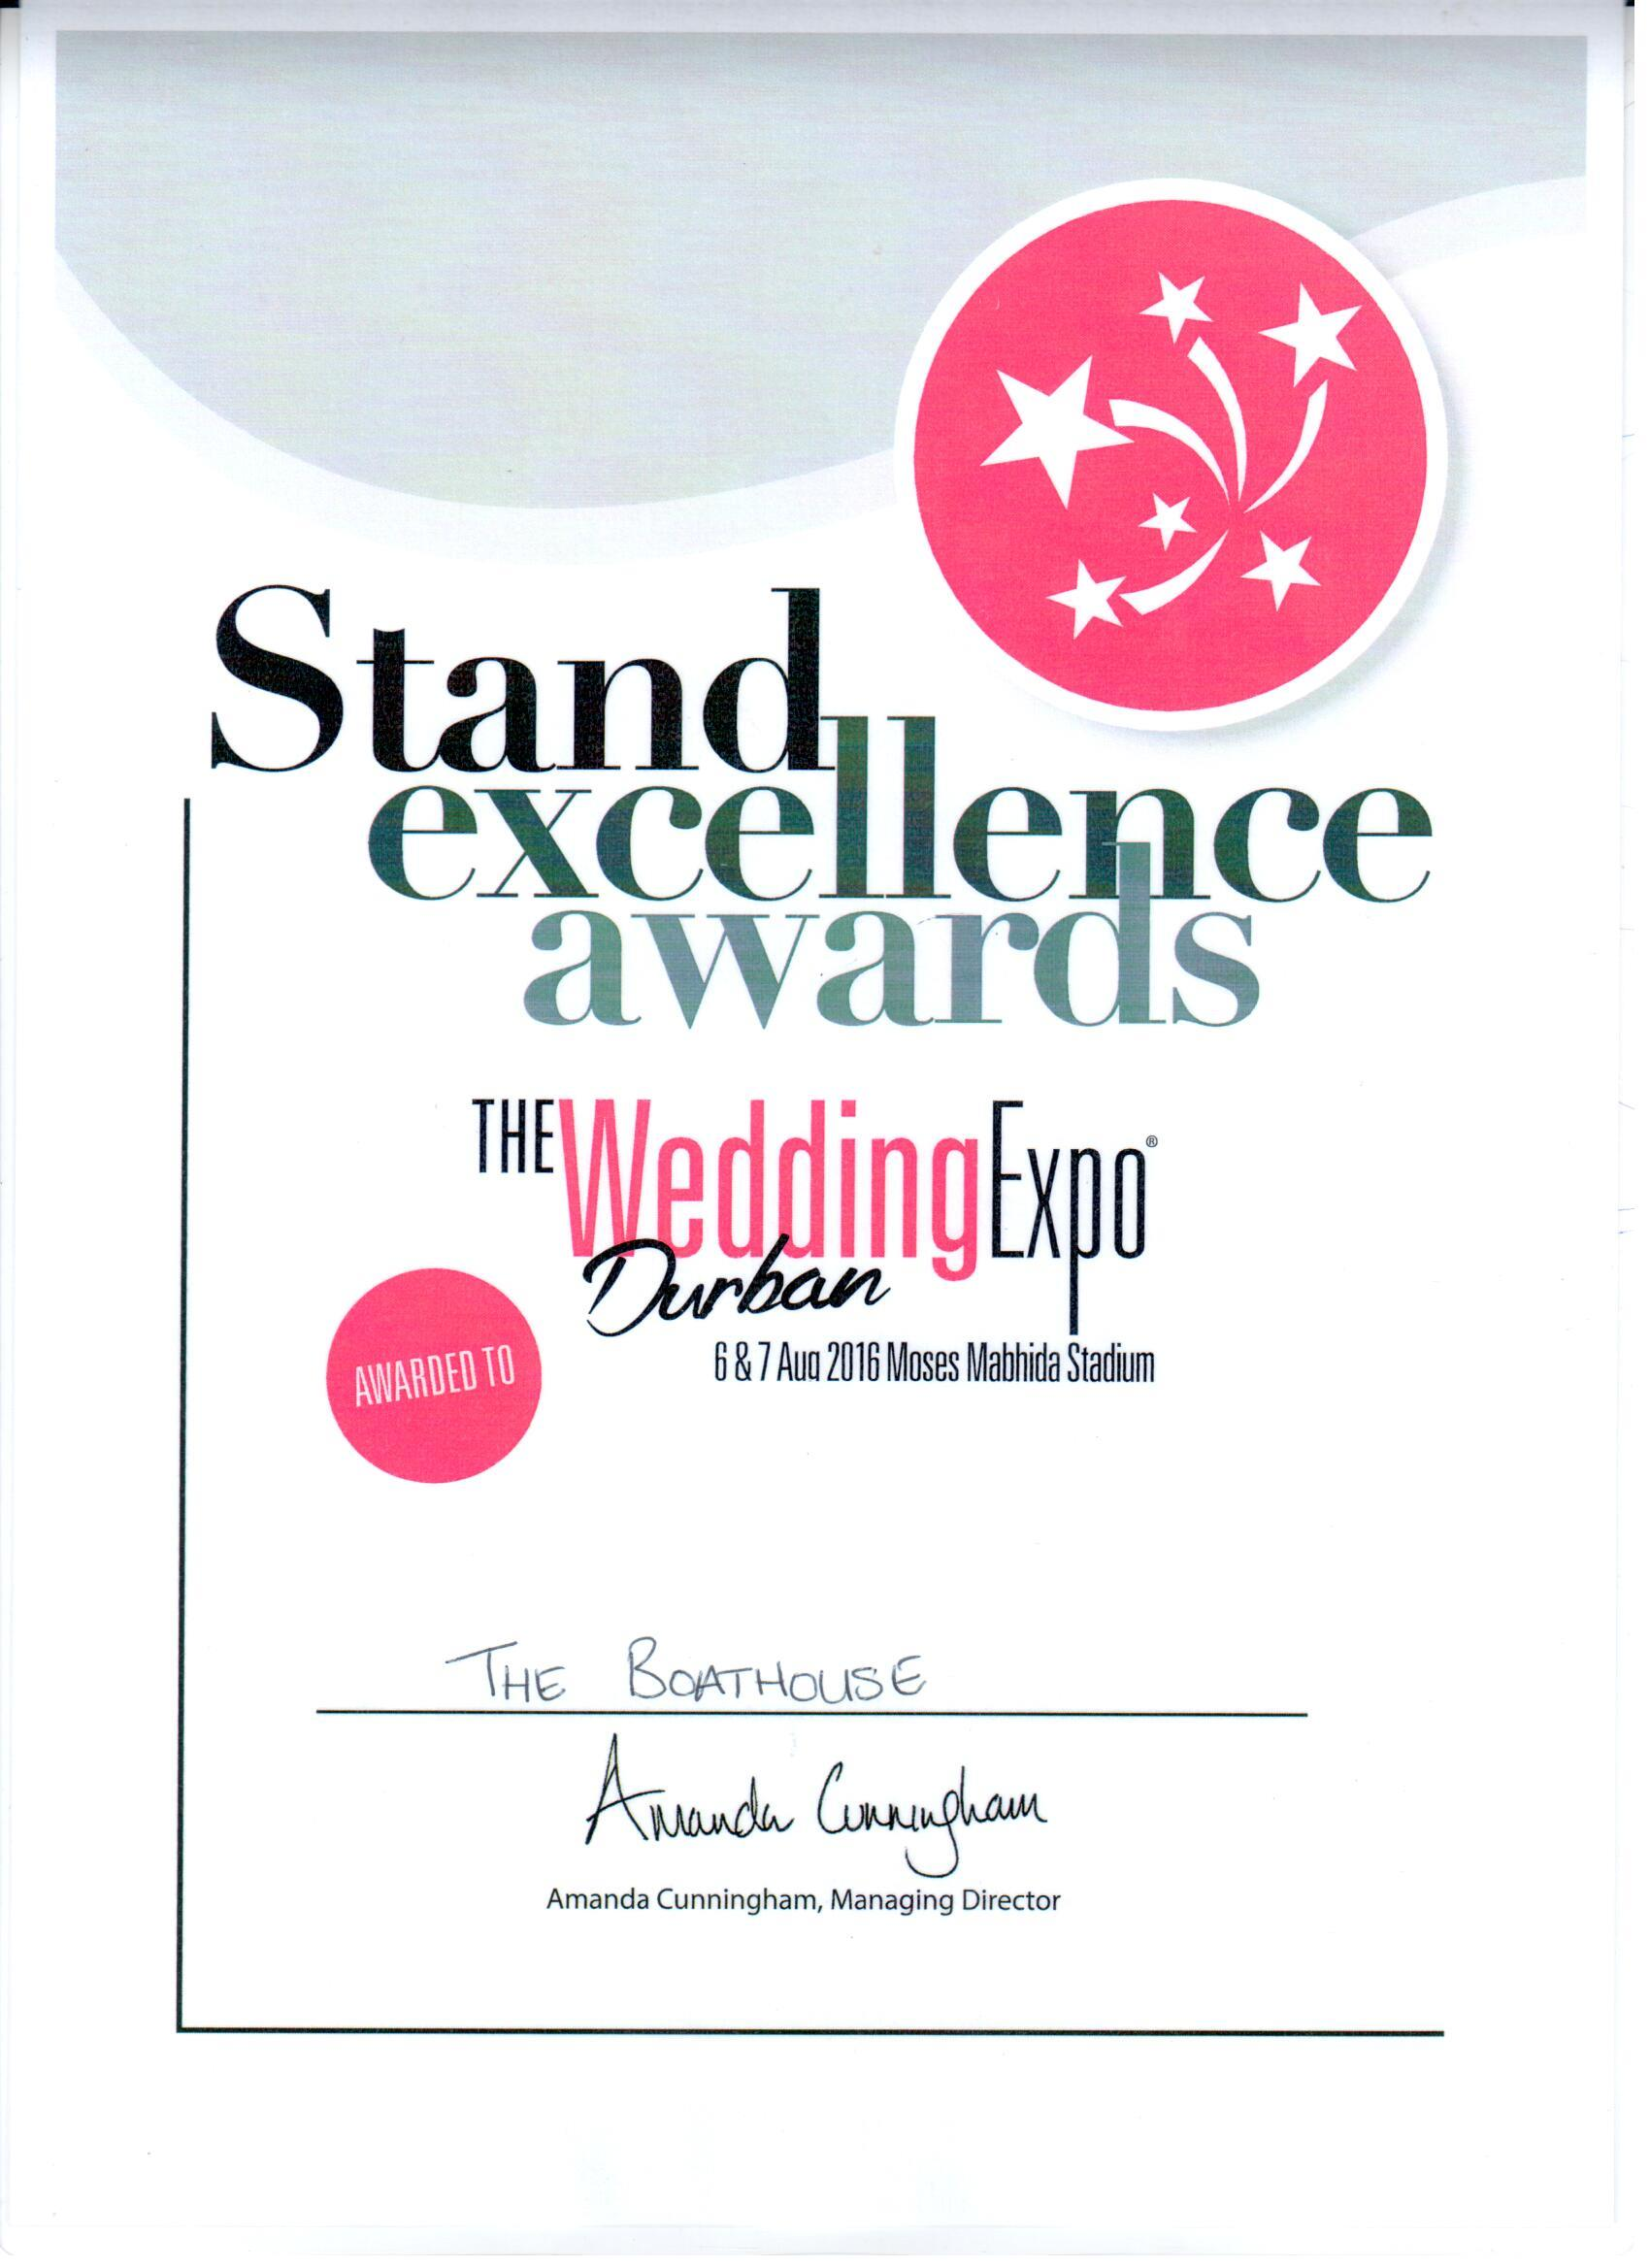 The Wedding Expo 2016